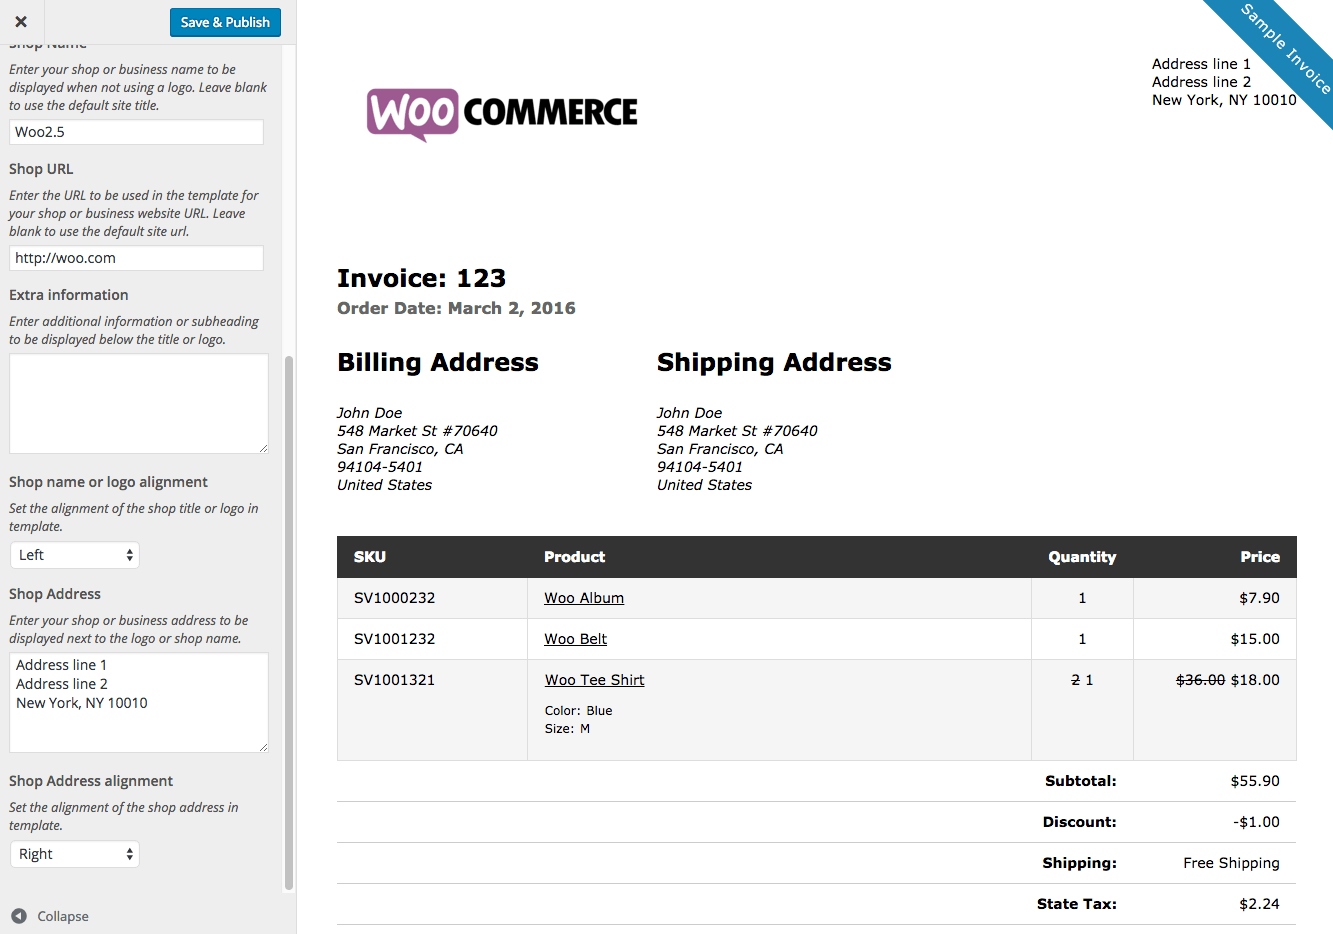 Bringjacobolivierhomeus  Stunning Print Invoices Amp Packing Lists  Woocommerce With Exciting Woocommerce Print Invoices  Packing Lists Customizer With Awesome Invoice Program Free Also Google Spreadsheet Invoice Template In Addition Auto Repair Shop Invoice And Remittance Invoice As Well As Body Shop Invoice Template Additionally Google Docs Template Invoice From Woocommercecom With Bringjacobolivierhomeus  Exciting Print Invoices Amp Packing Lists  Woocommerce With Awesome Woocommerce Print Invoices  Packing Lists Customizer And Stunning Invoice Program Free Also Google Spreadsheet Invoice Template In Addition Auto Repair Shop Invoice From Woocommercecom